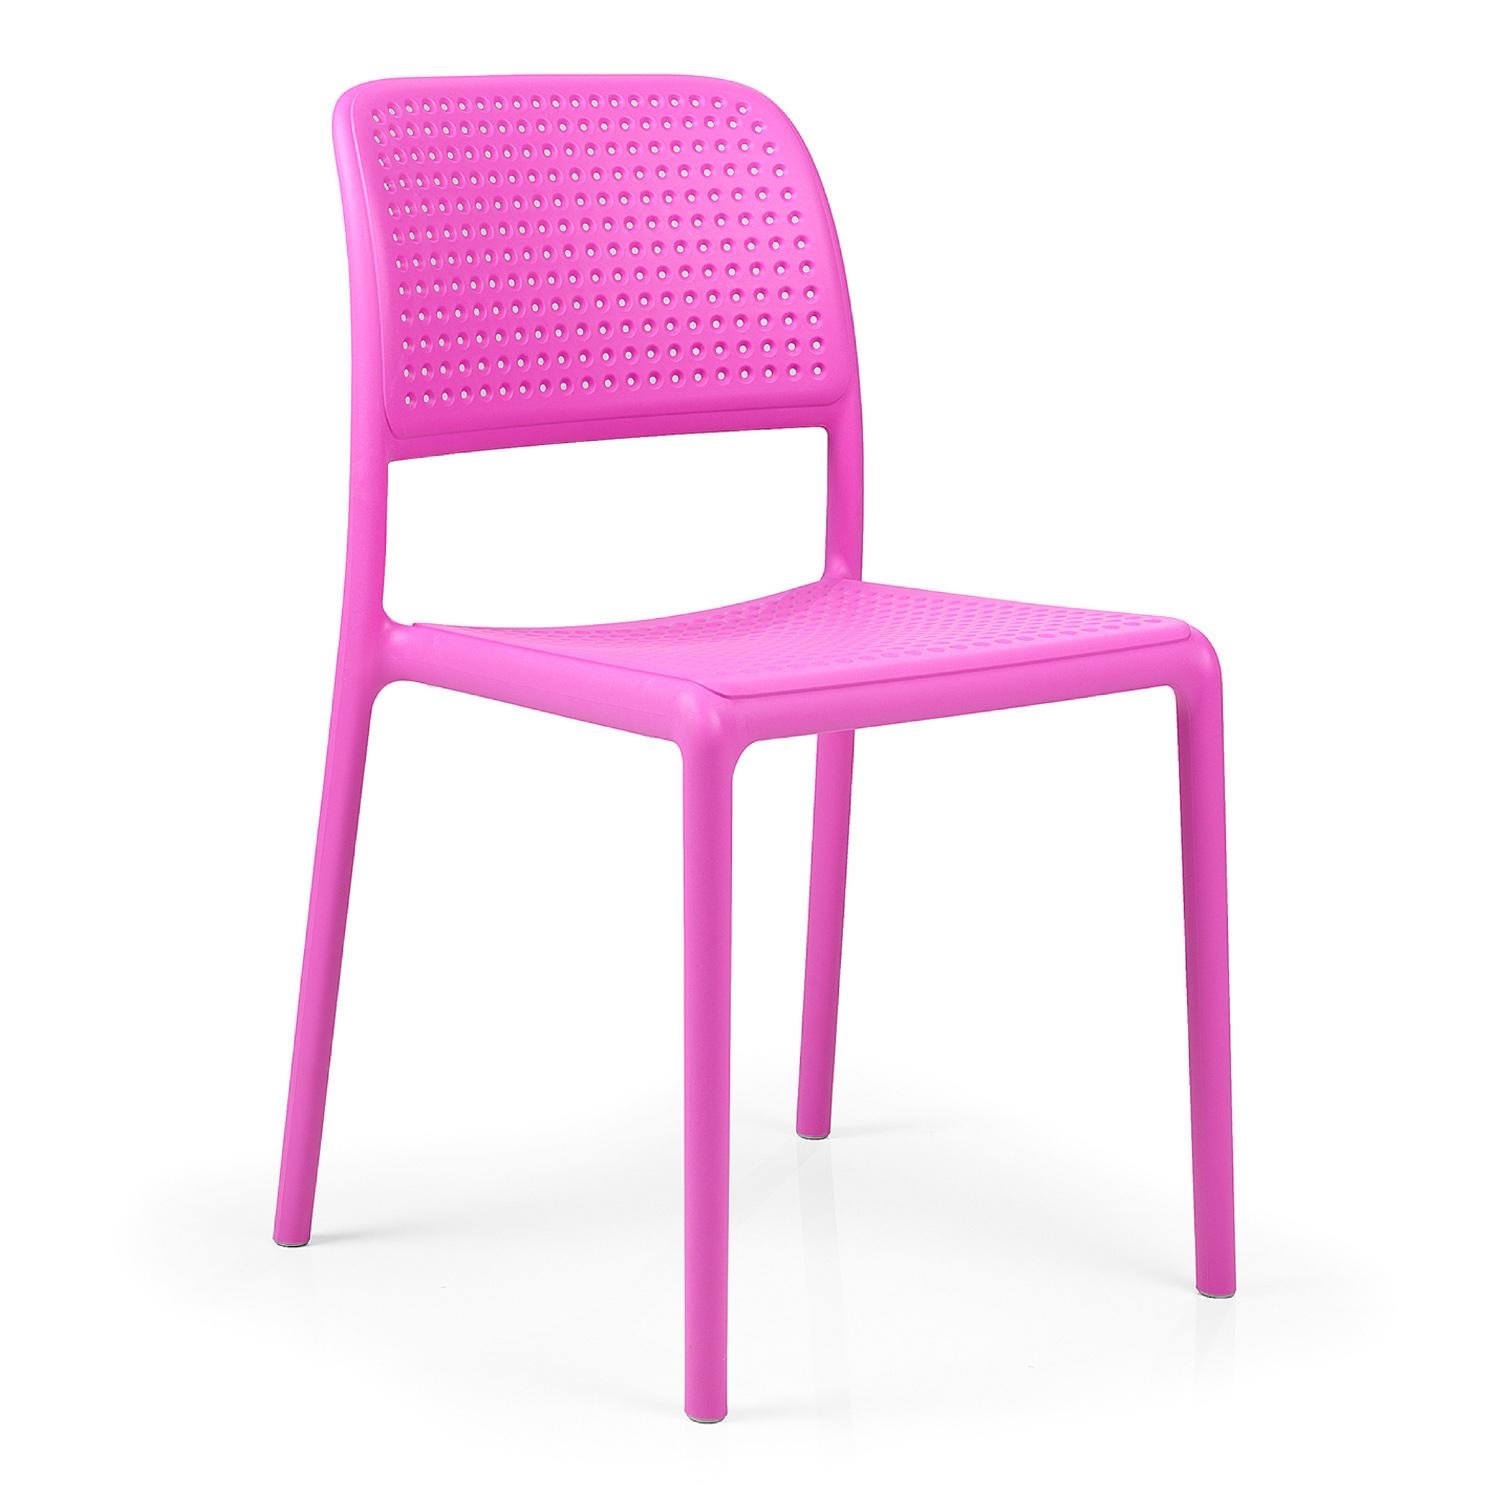 Bistrot Chair - pink